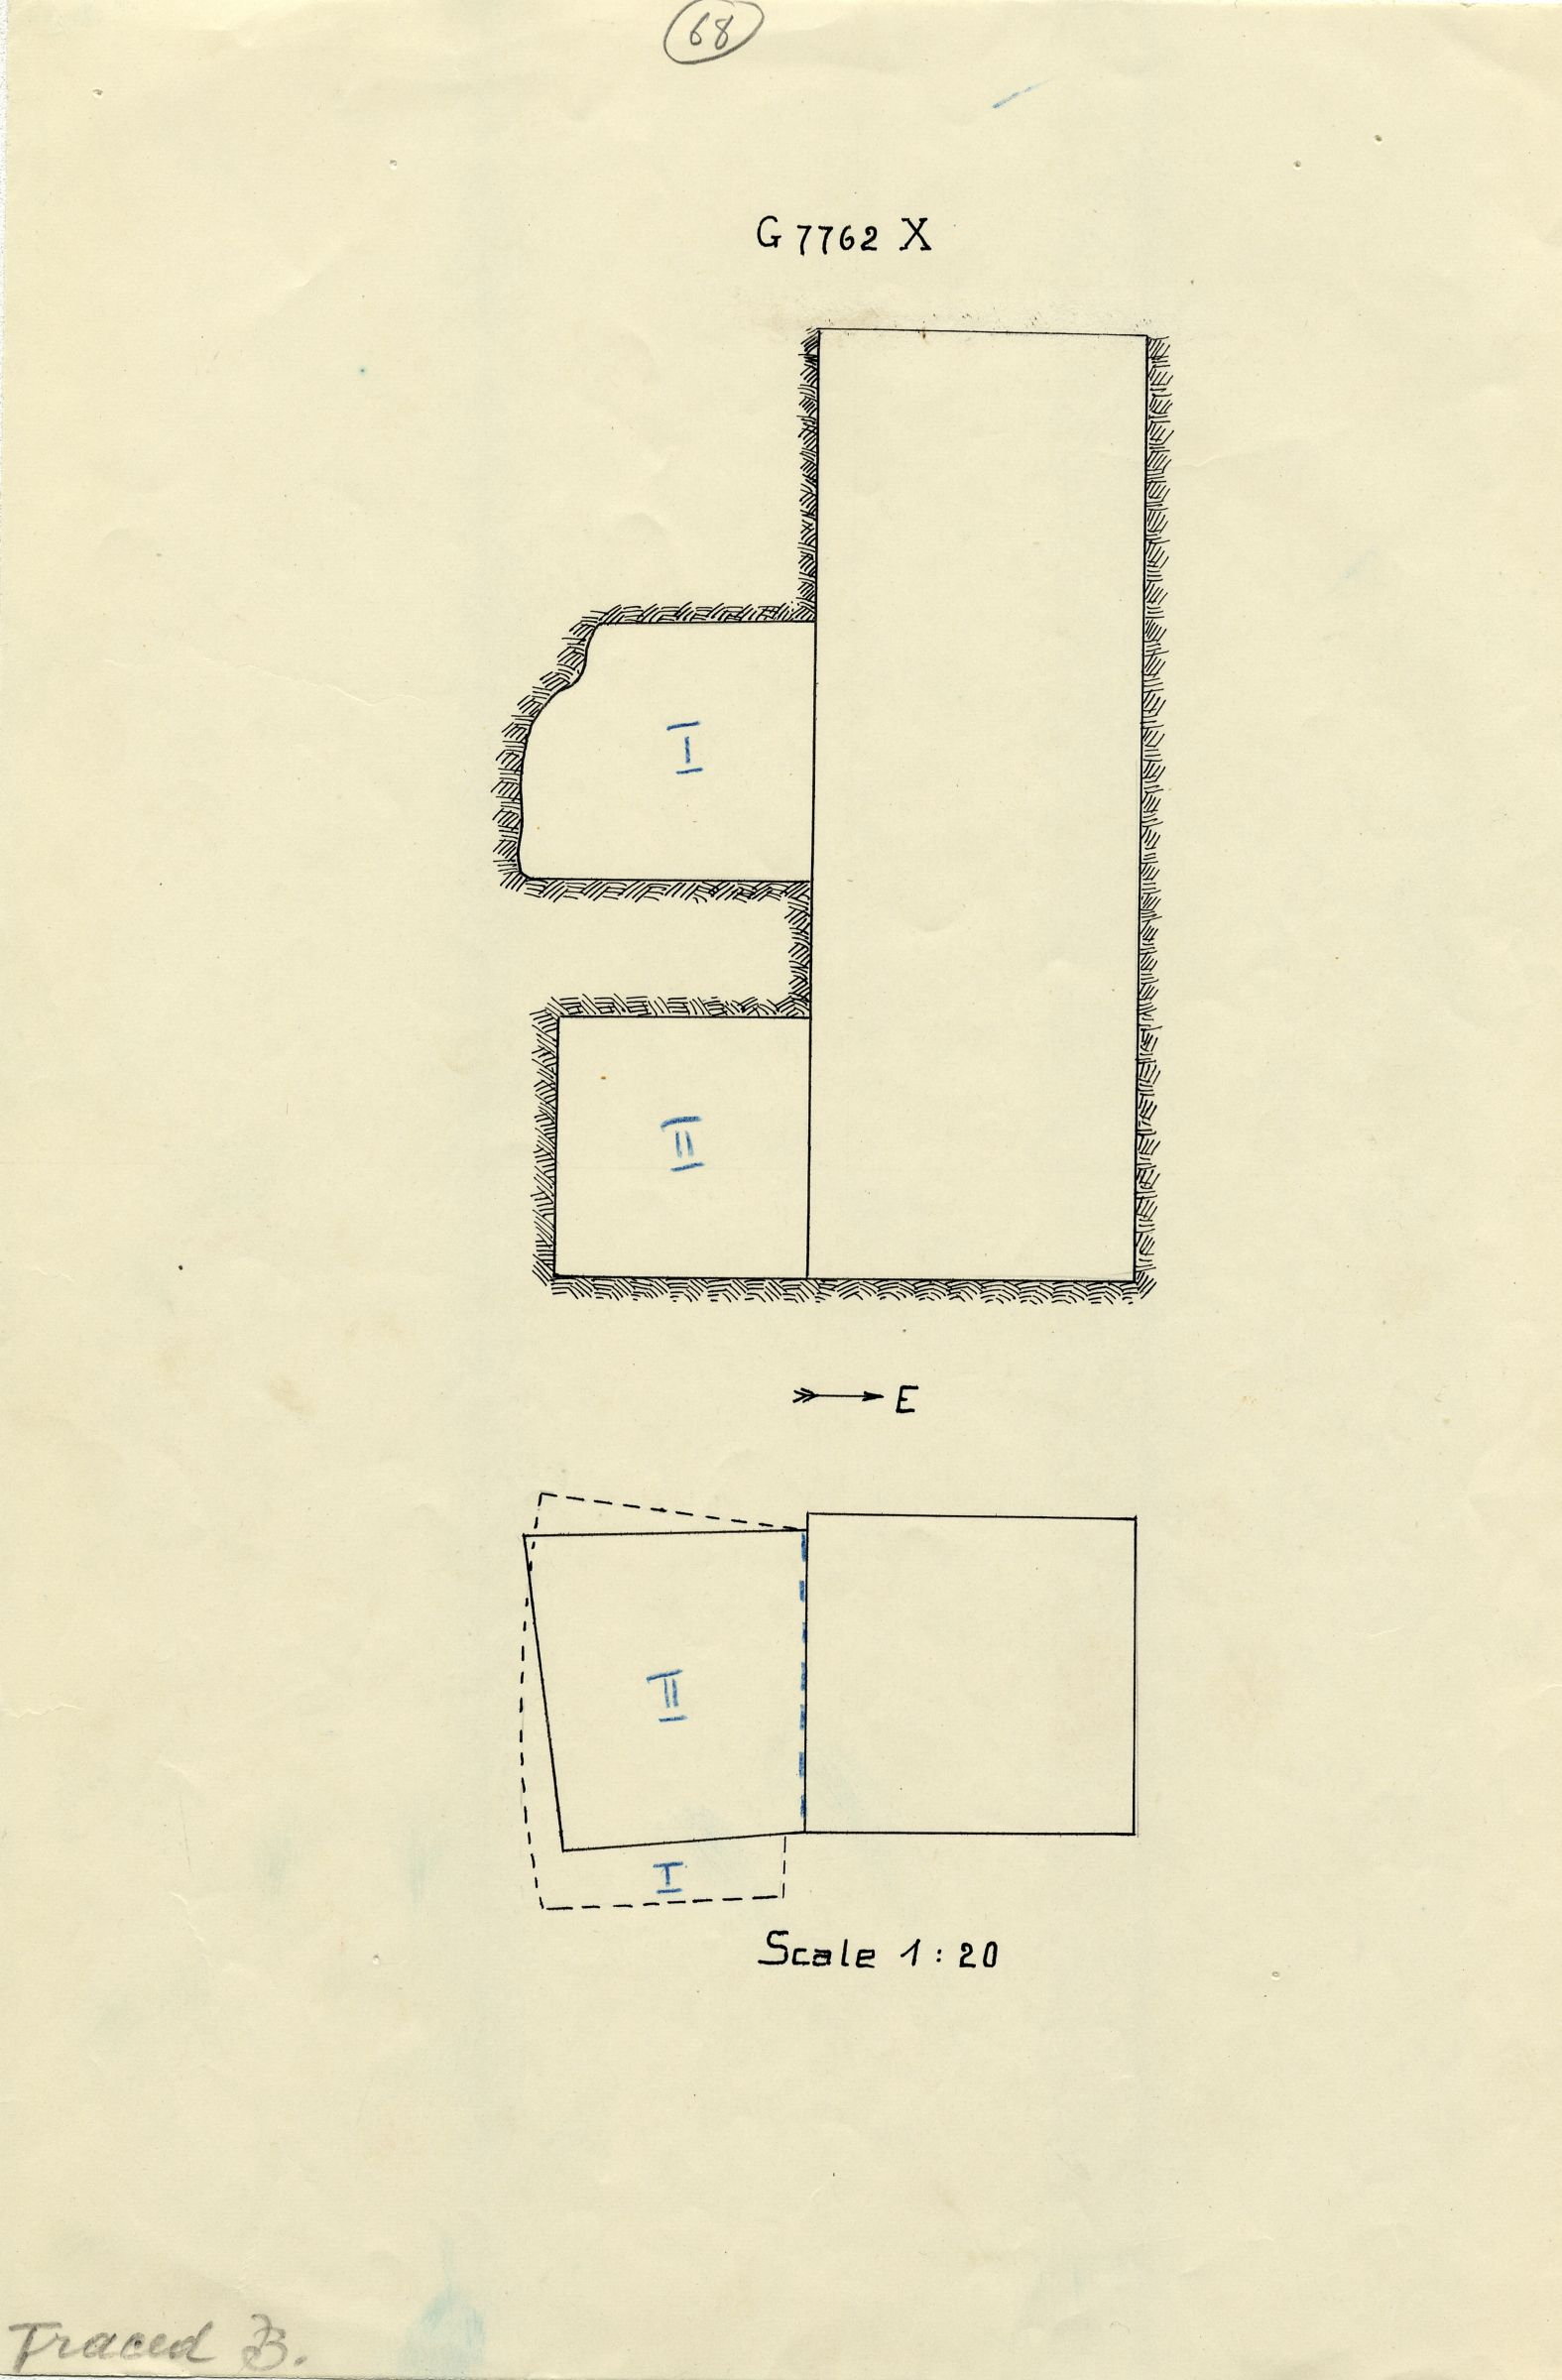 Maps and plans: G 7762, Shaft X